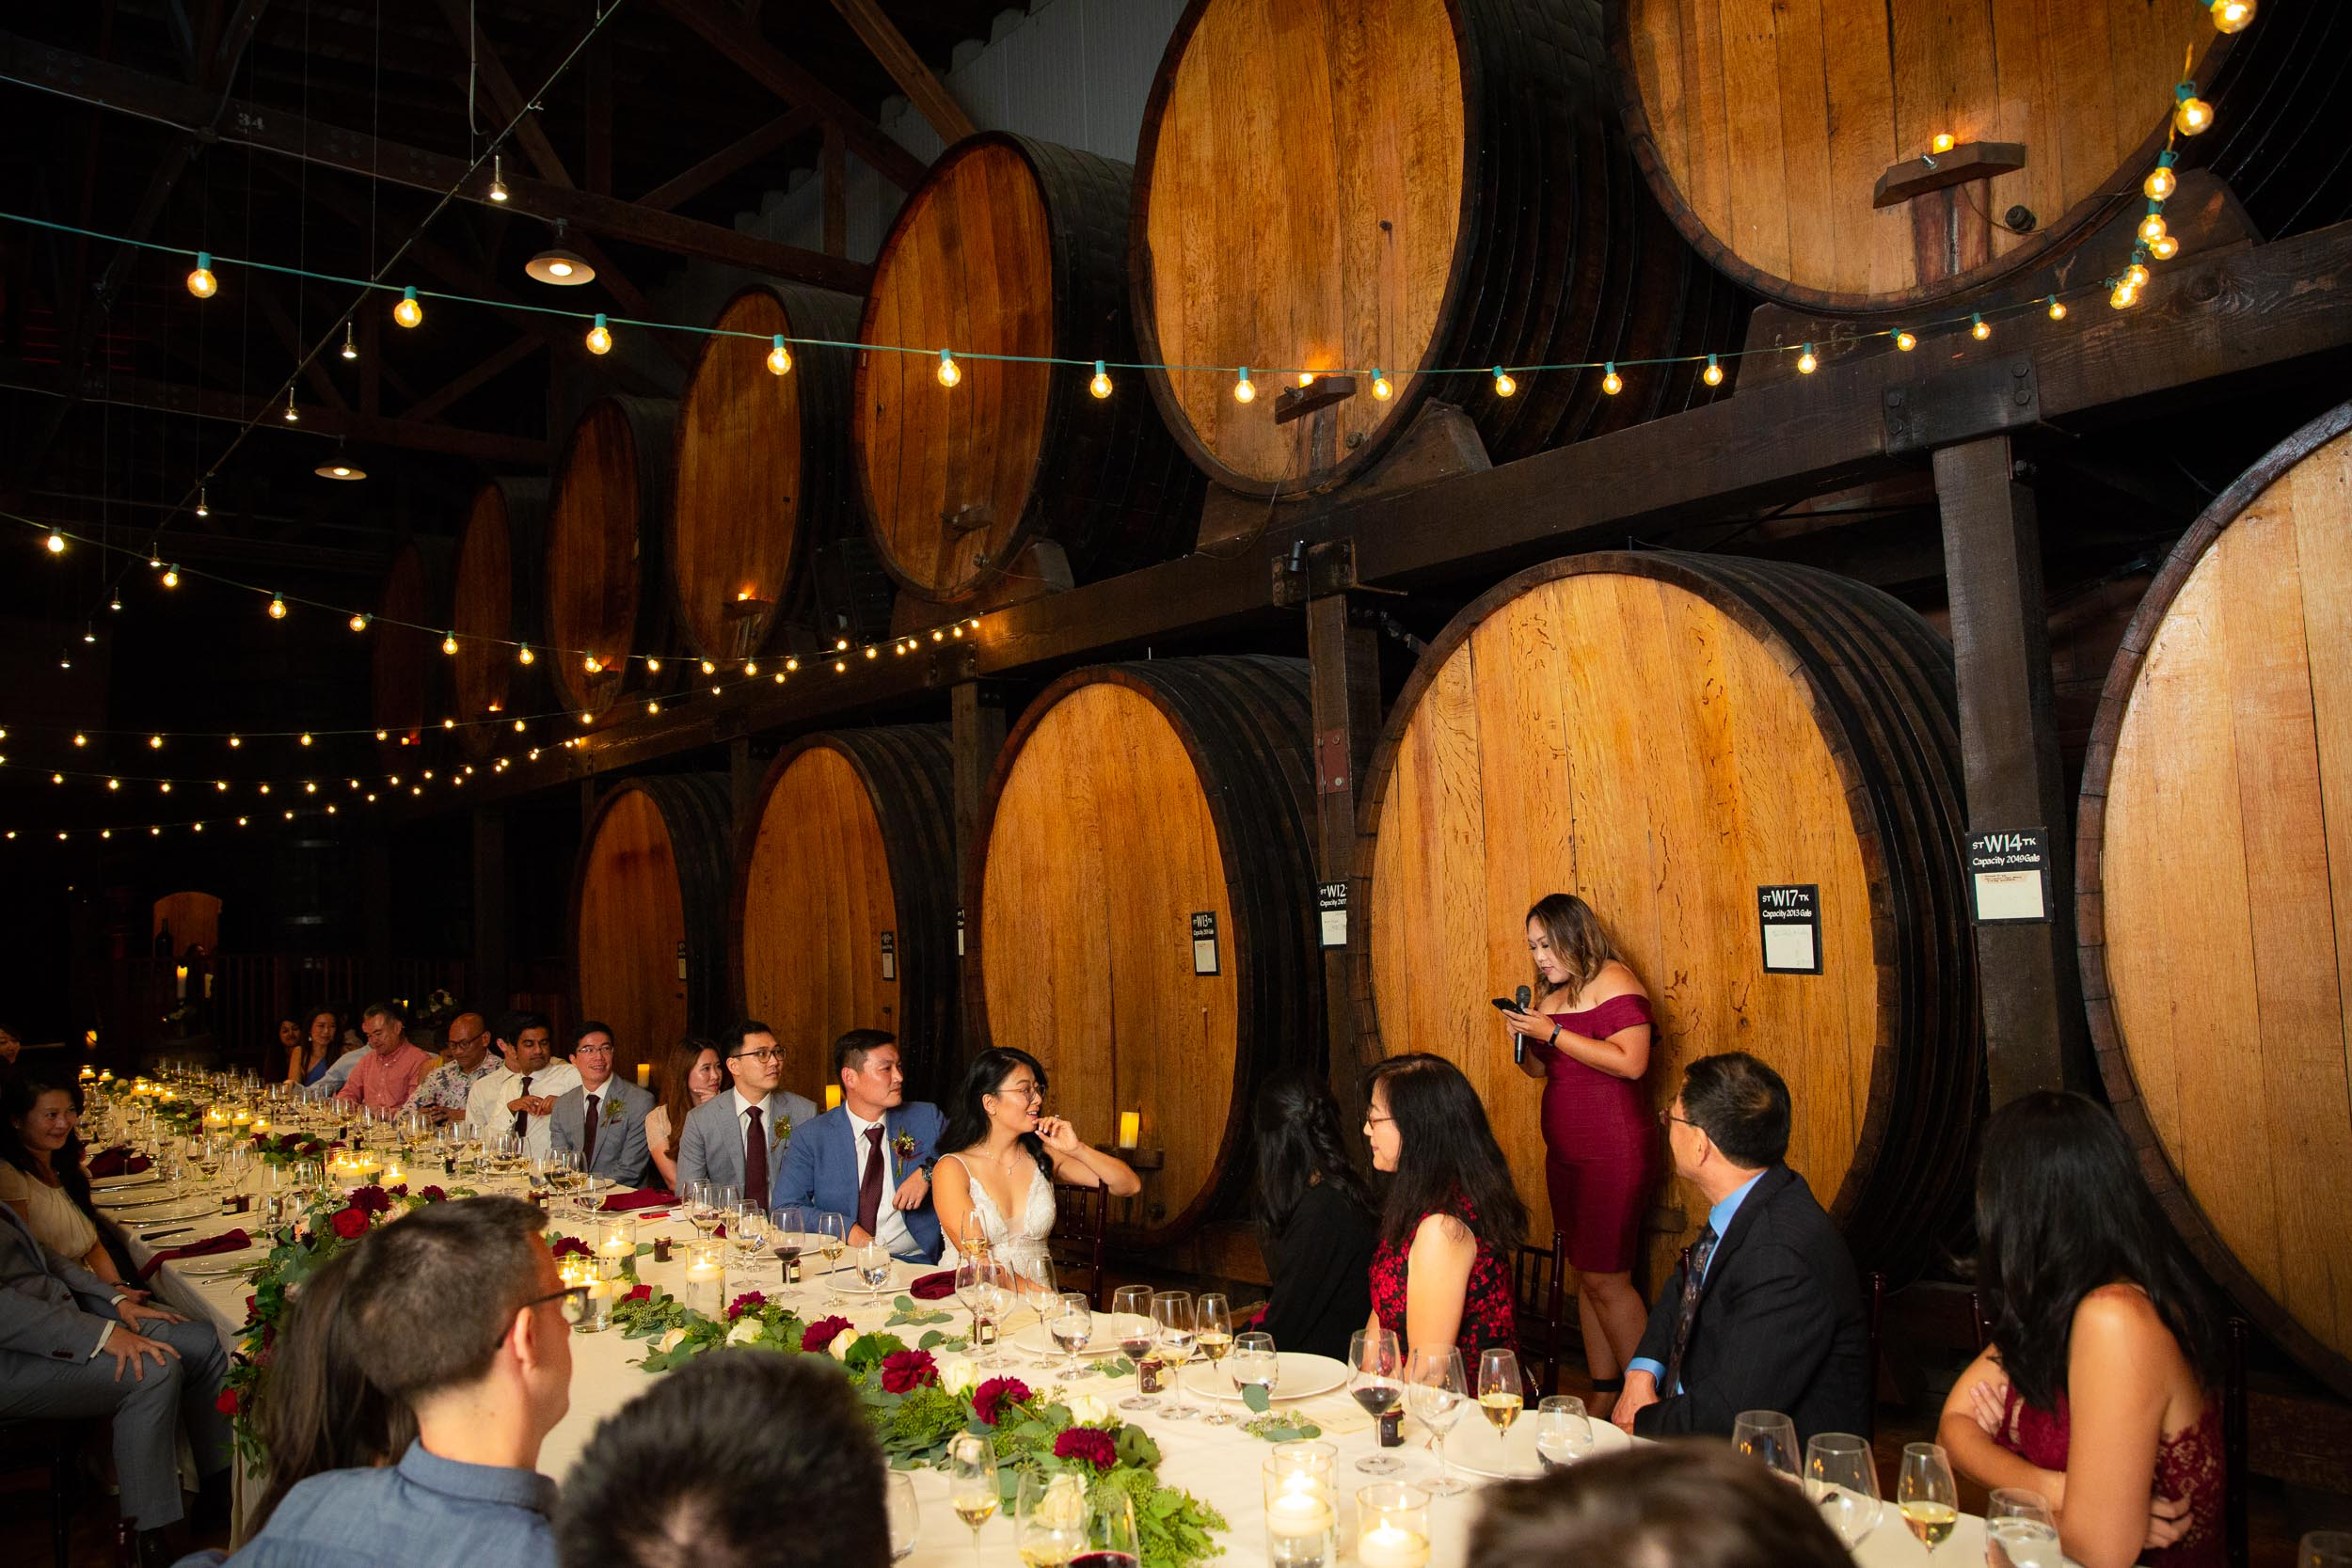 Merryvale Vineyards Wedding-46.jpg